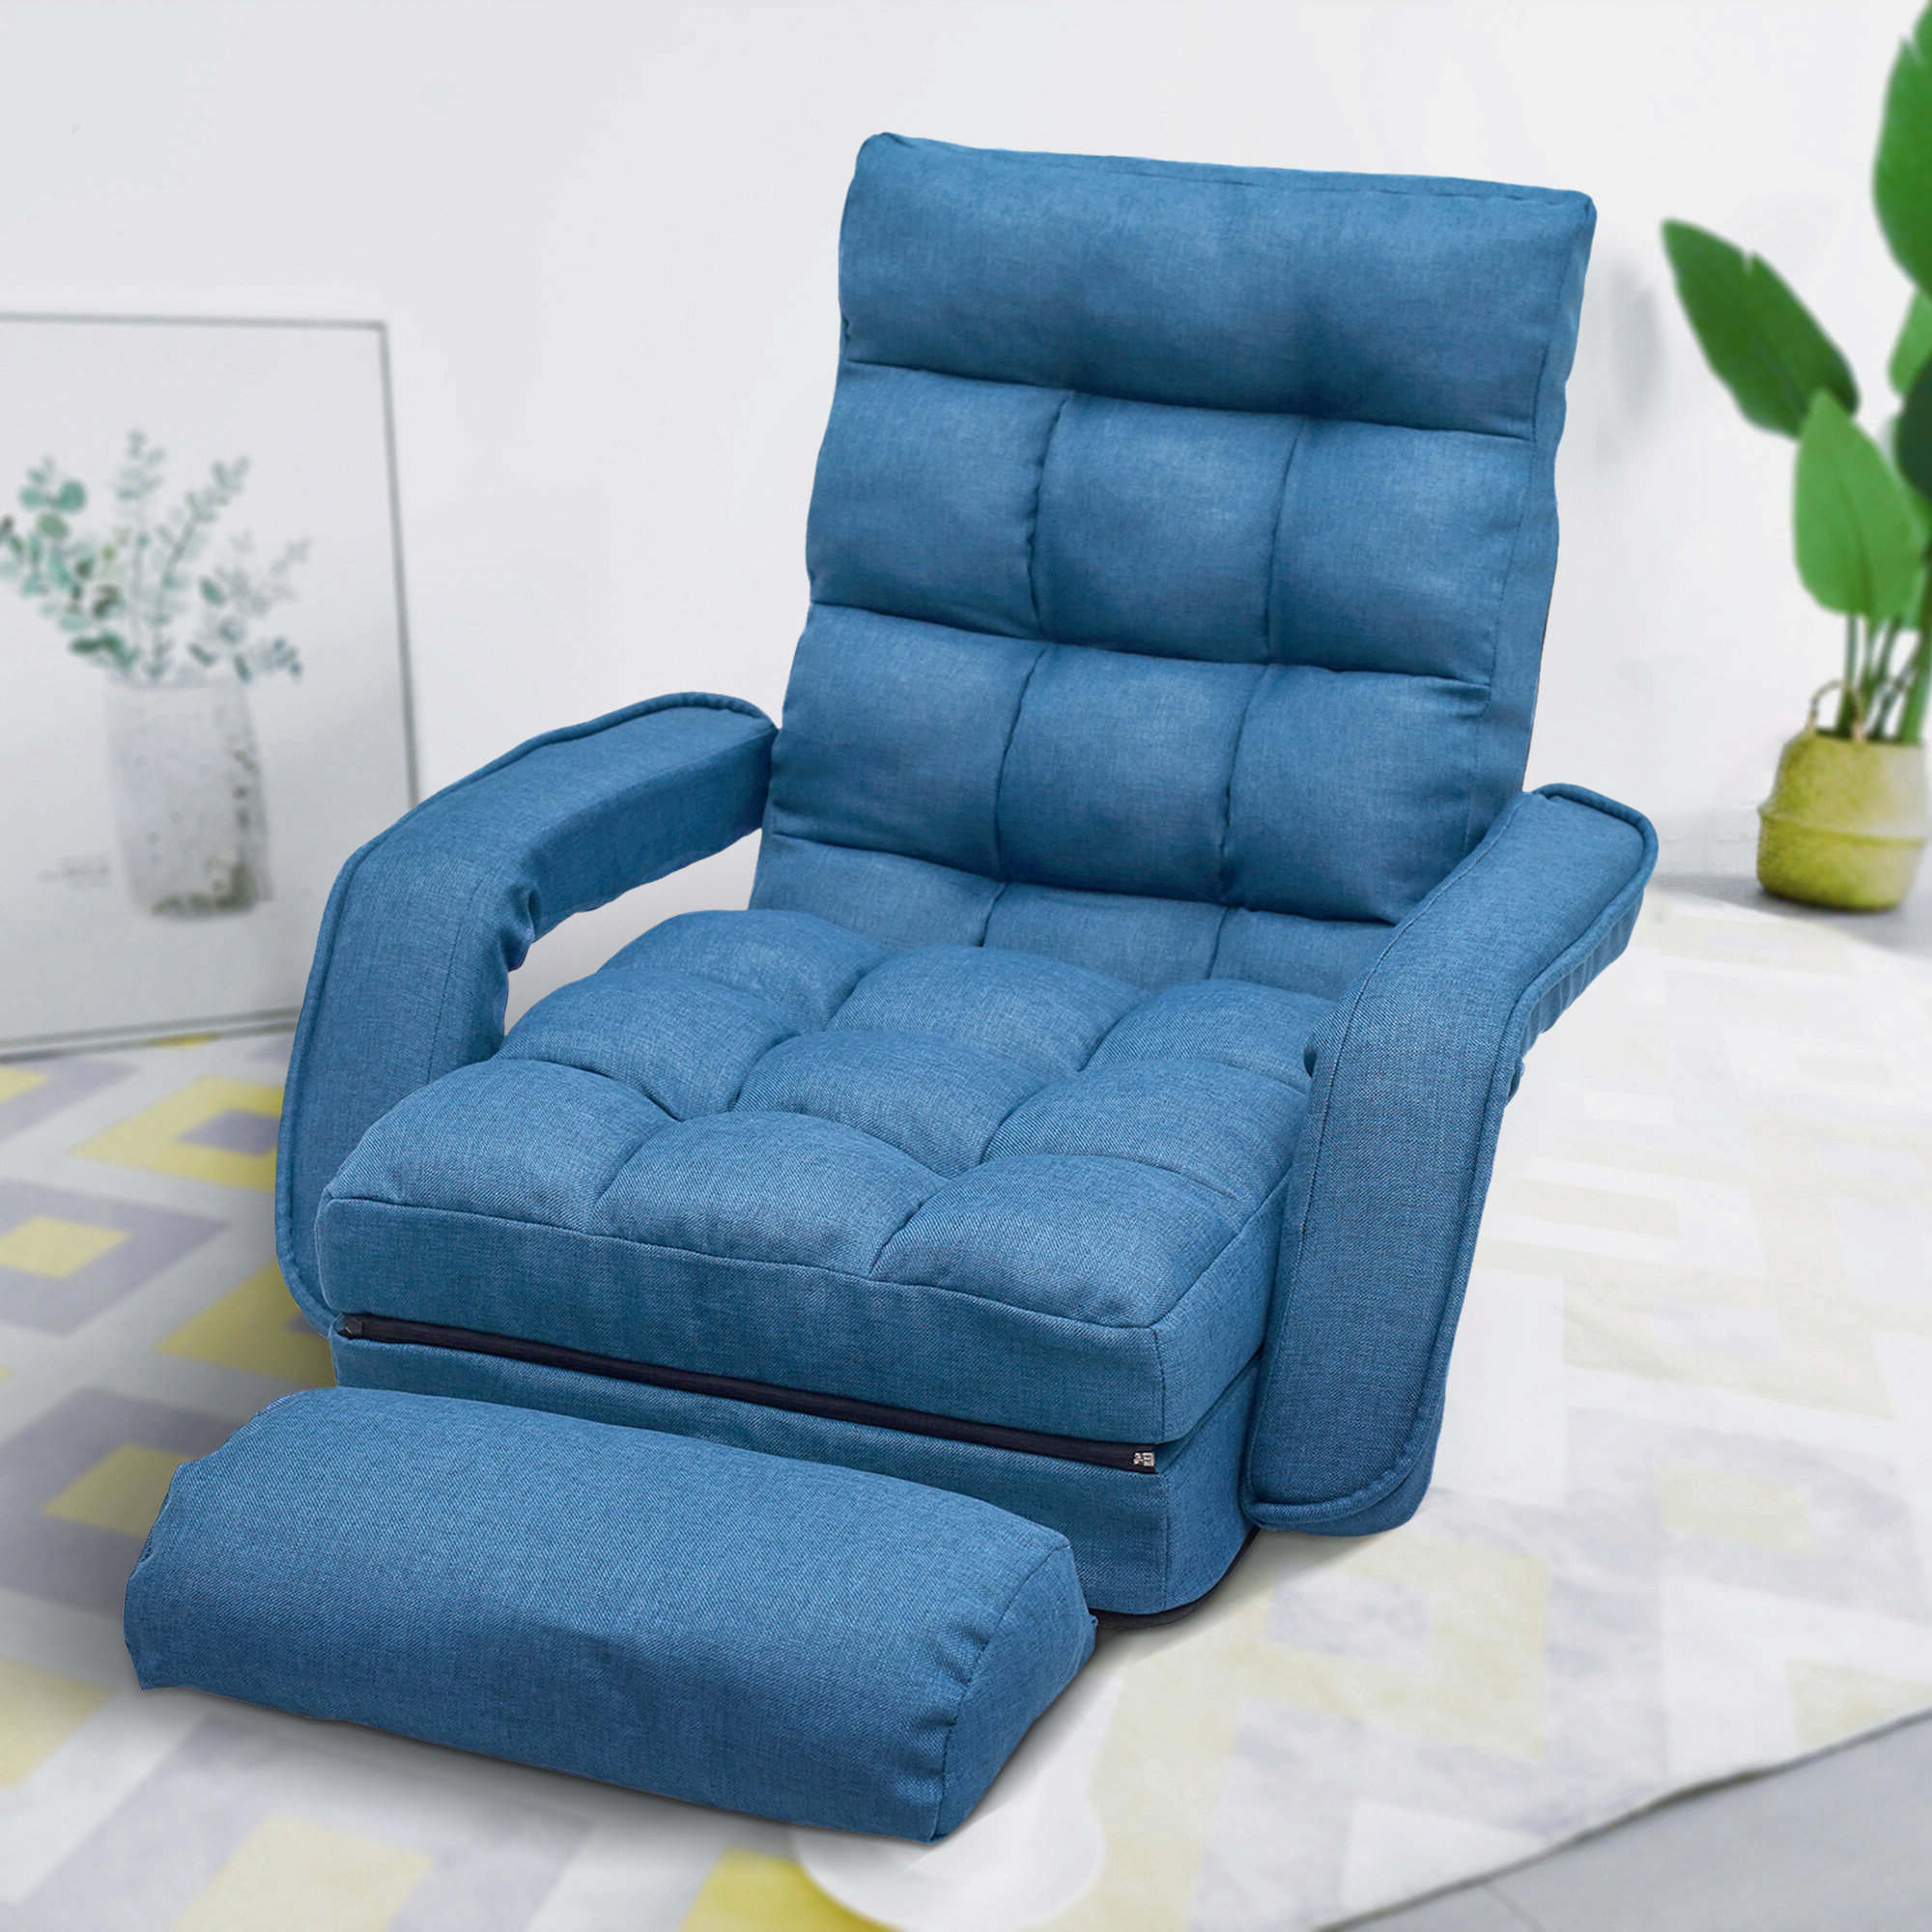 Popular Lazy Floor Convertible Chair With Perz Tufted Faux Leather Convertible Chairs (View 14 of 20)